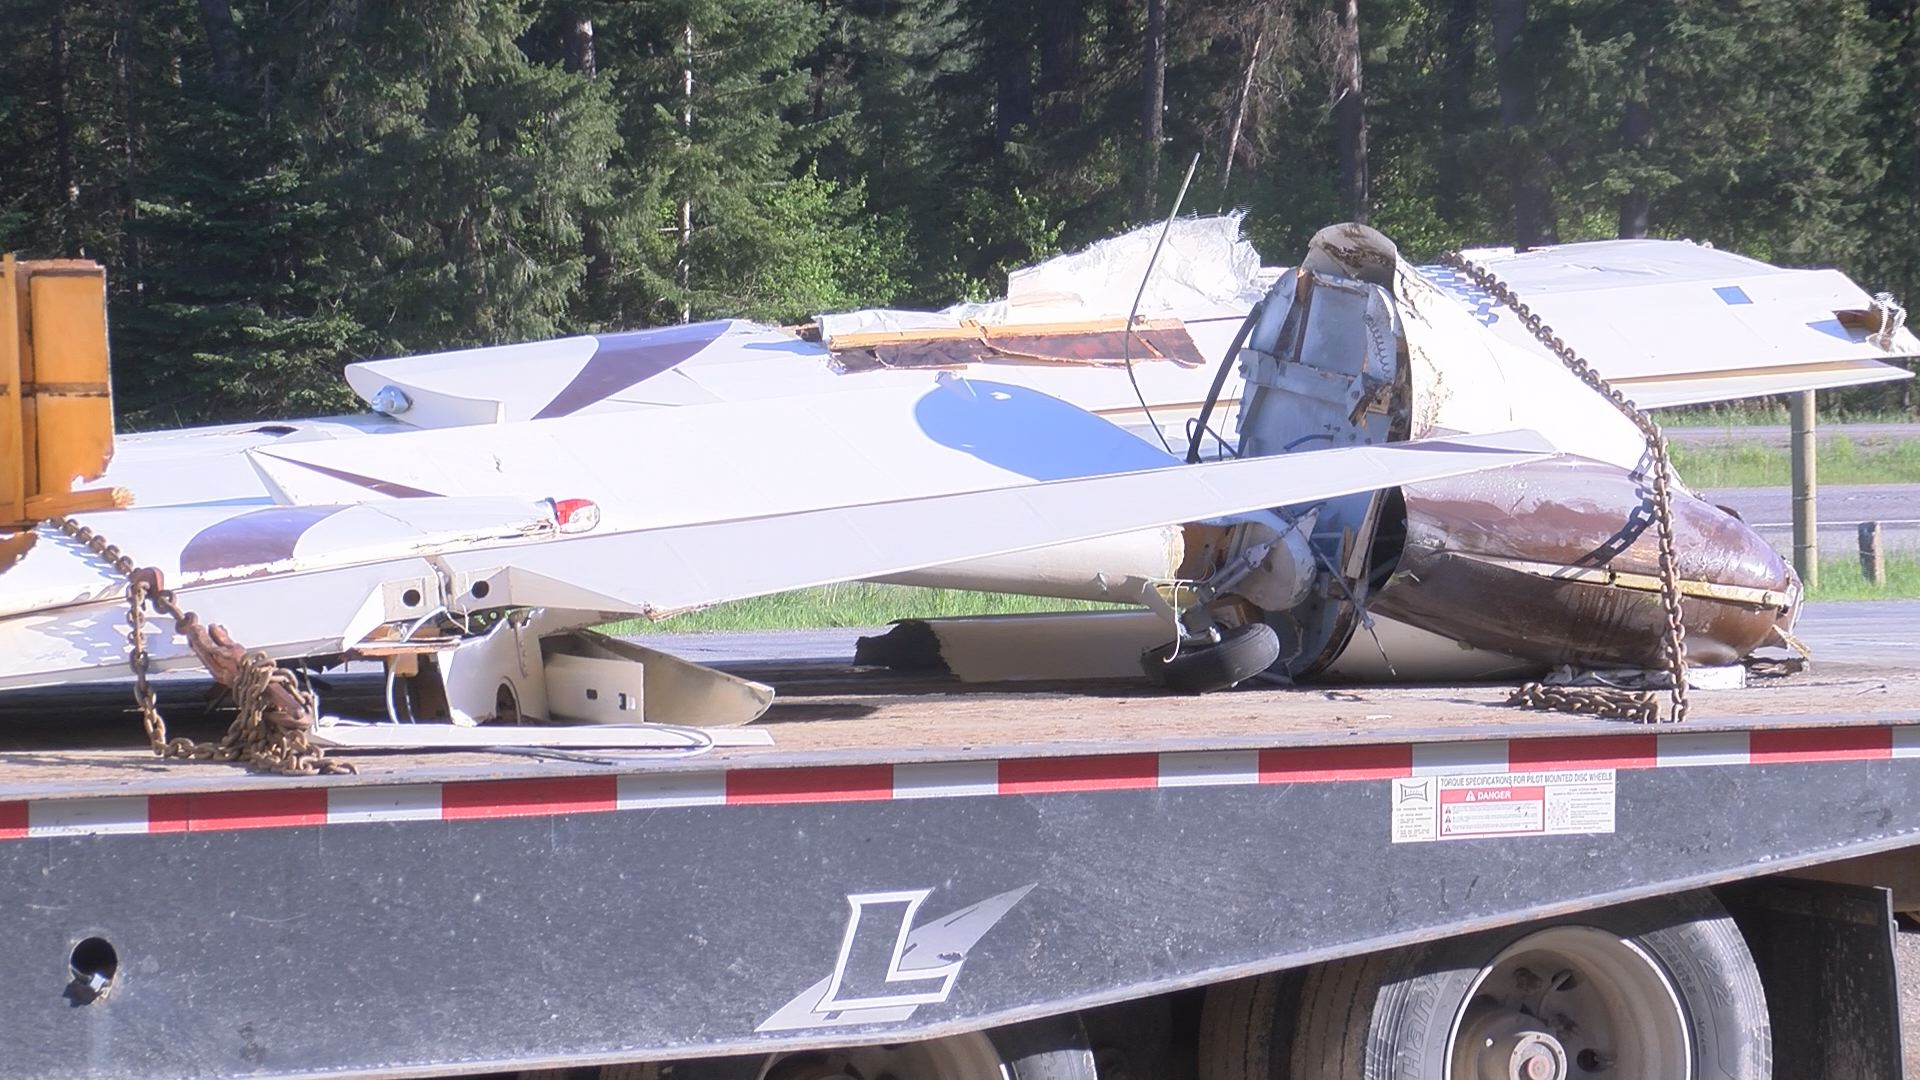 on the back of the flatbed truck is remnants of the experimental plane that crashed down on Interstate 90